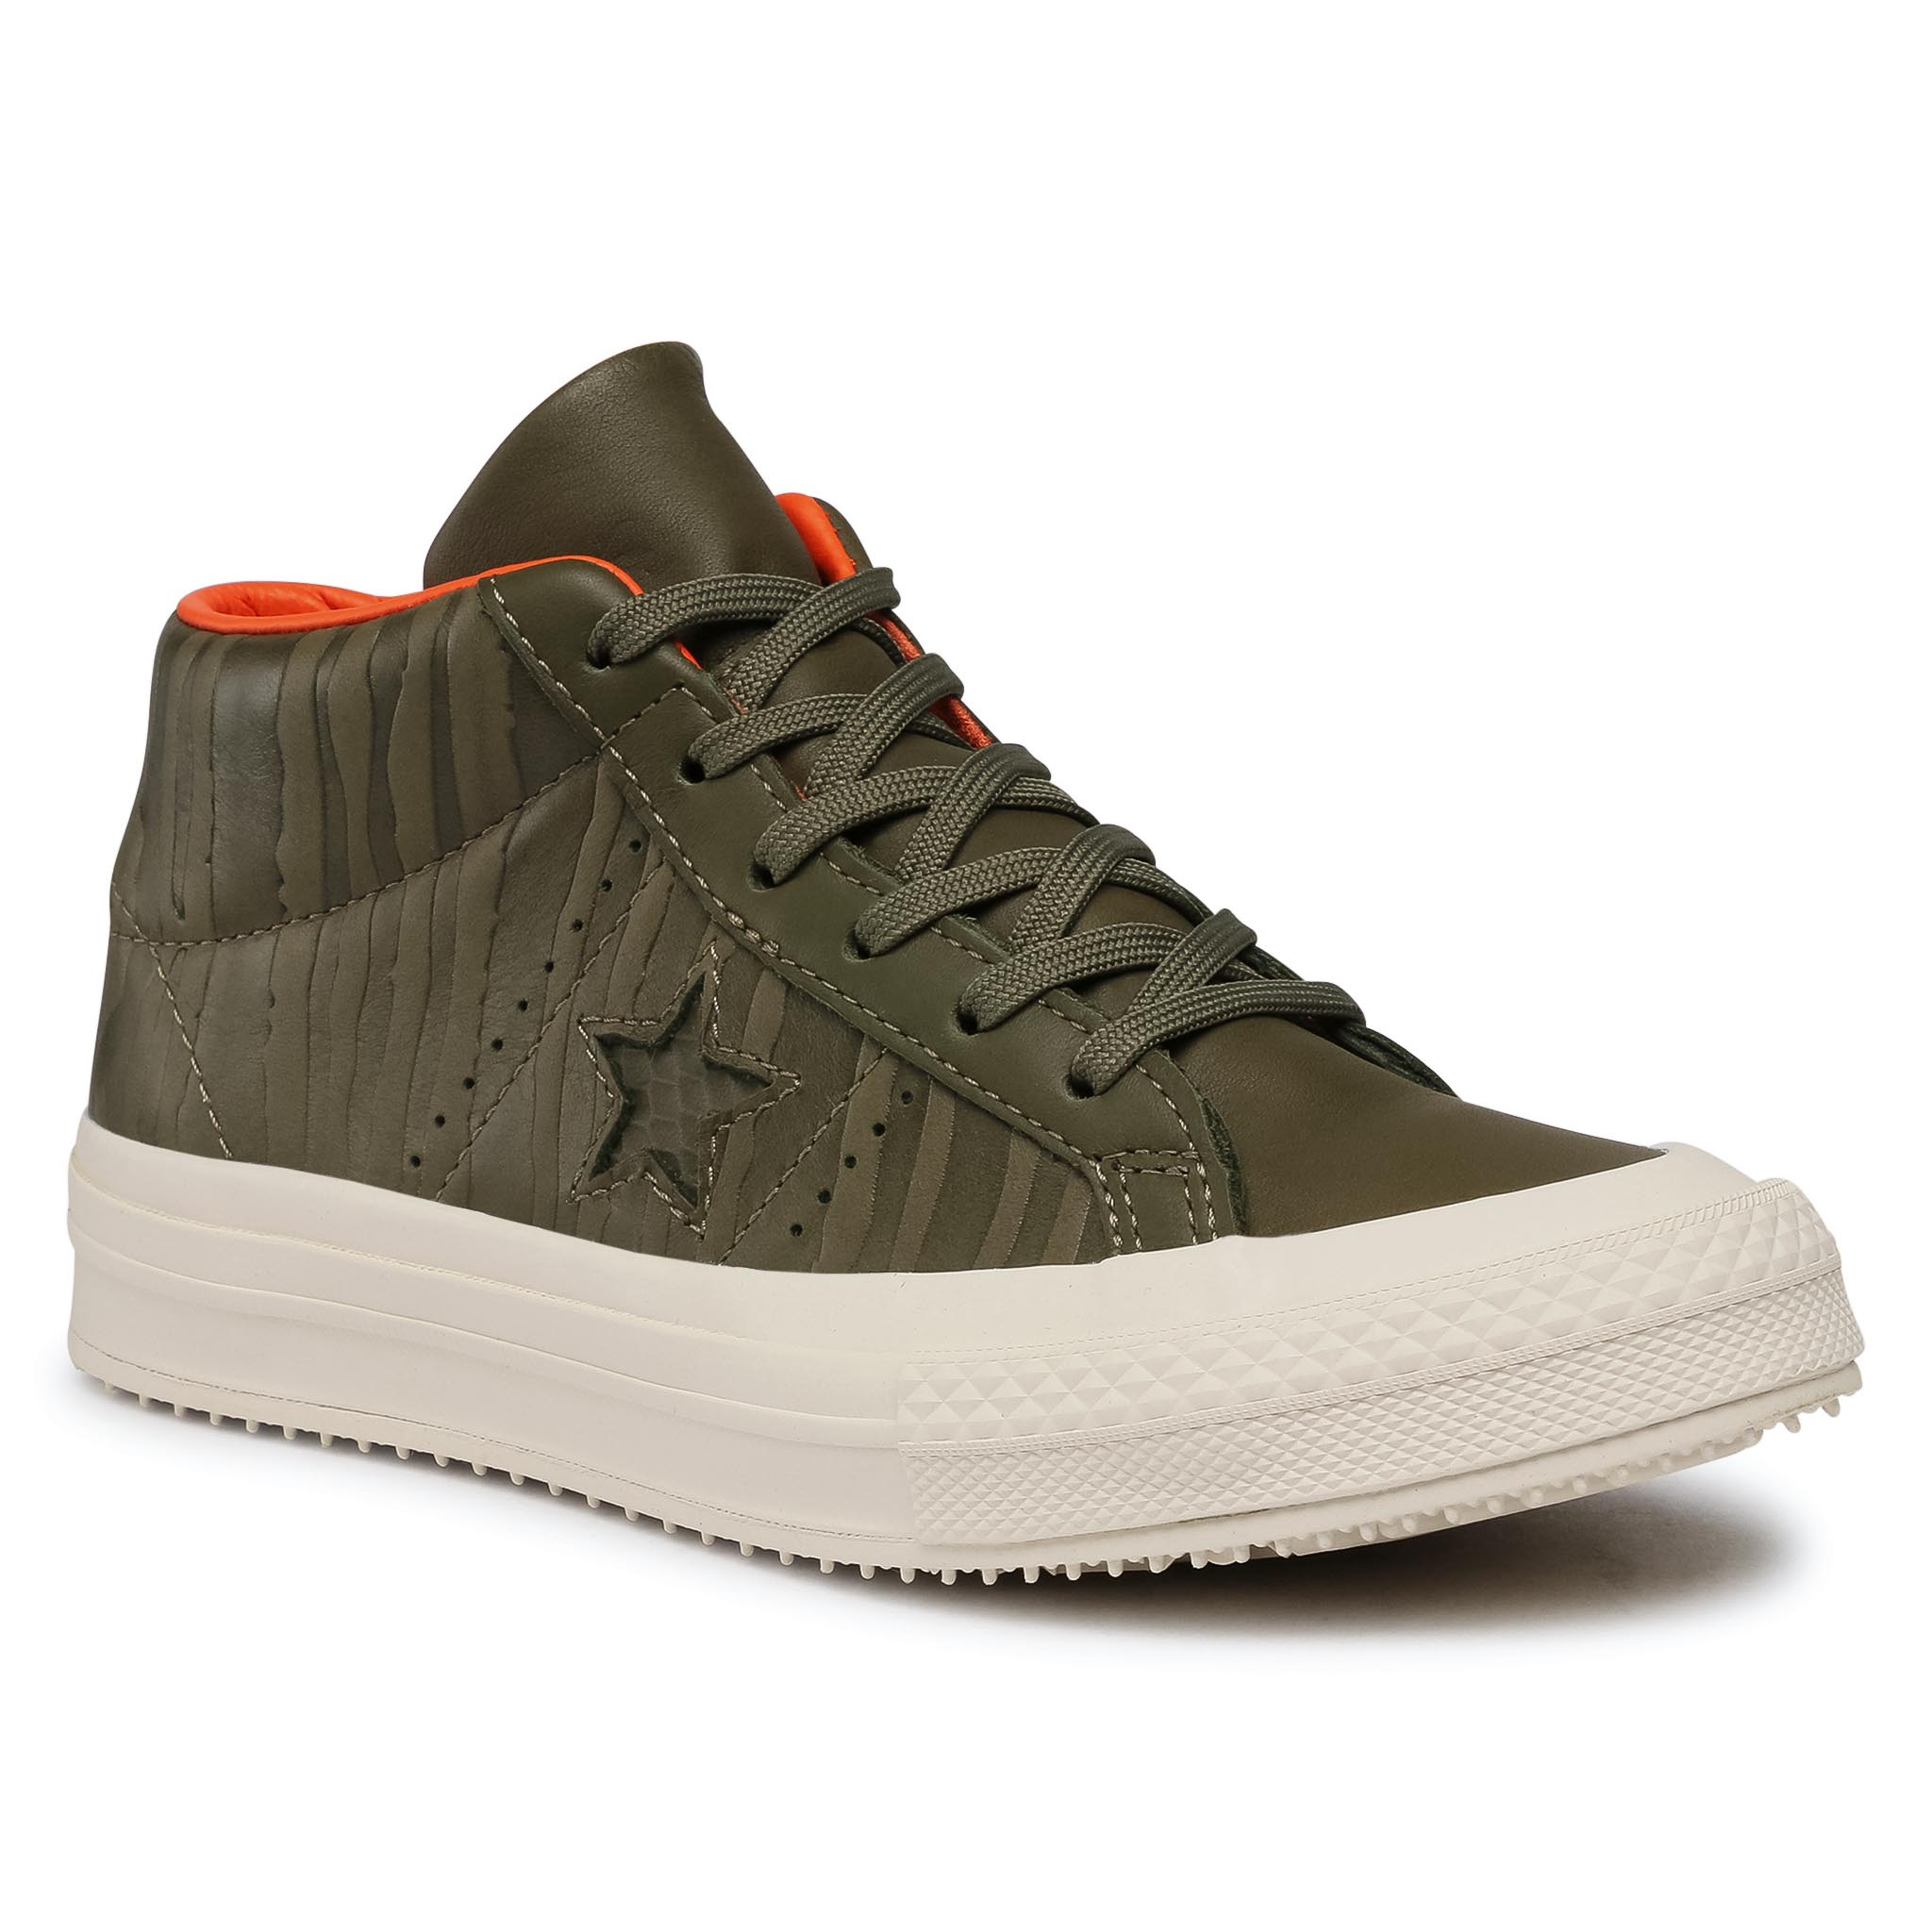 Sneakers CONVERSE - One Star Counter Climate Mid 158836C  Medium Olive/Black